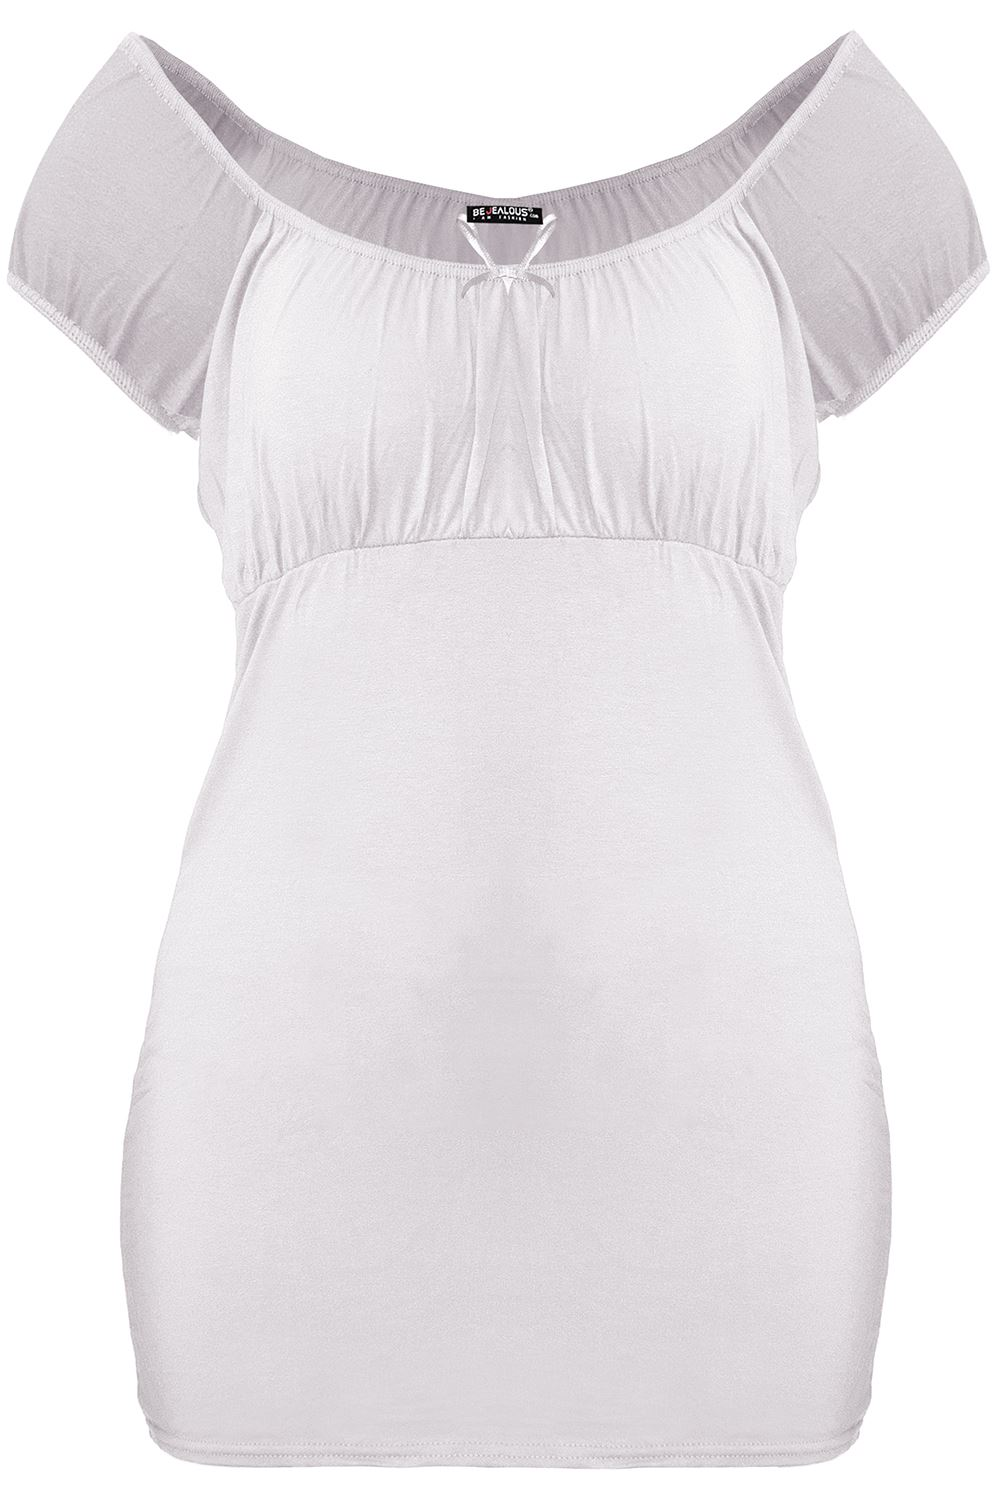 Plus Size Ladies Womens Gypsy Off Shoulder Boho Ruched Bow Tie Knot T-Shirt Top